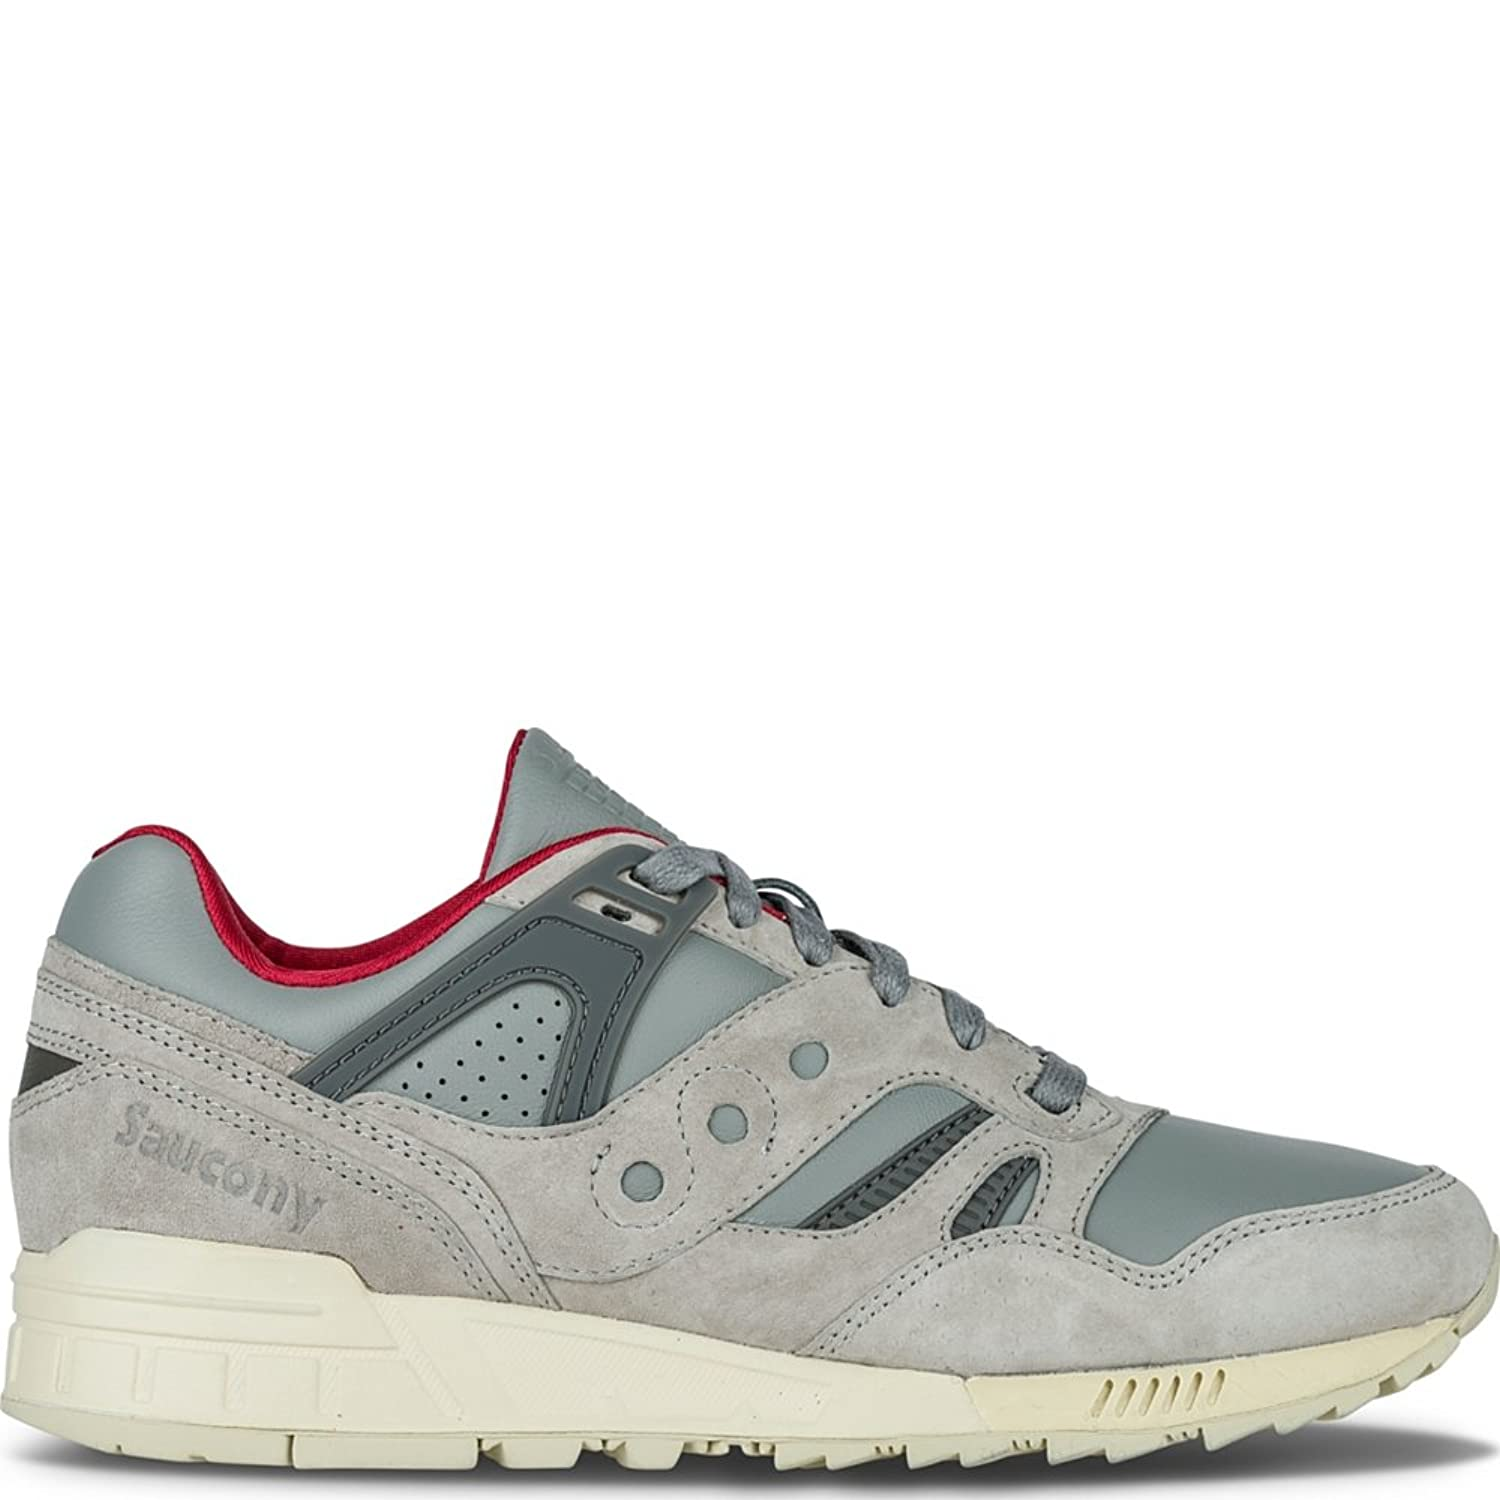 5c59b607 Saucony Originals Grid Sd Premium Public Garden, Men's Sneakers ...